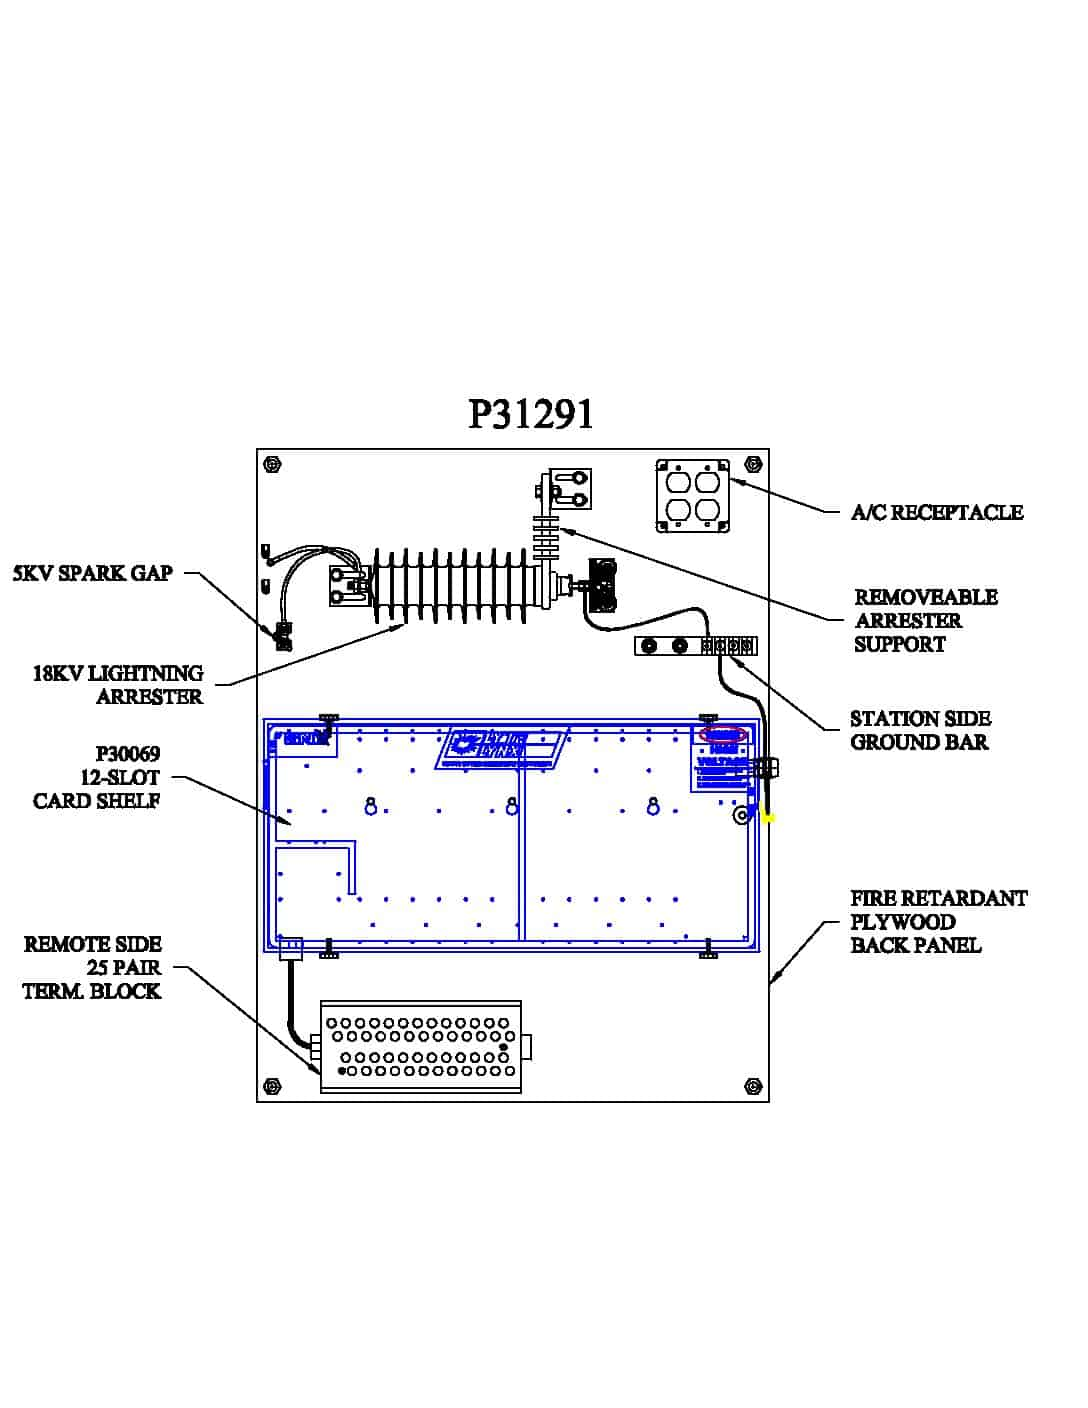 P31291 Turnkey Protection Packages – 12 slot PDF thumbnail